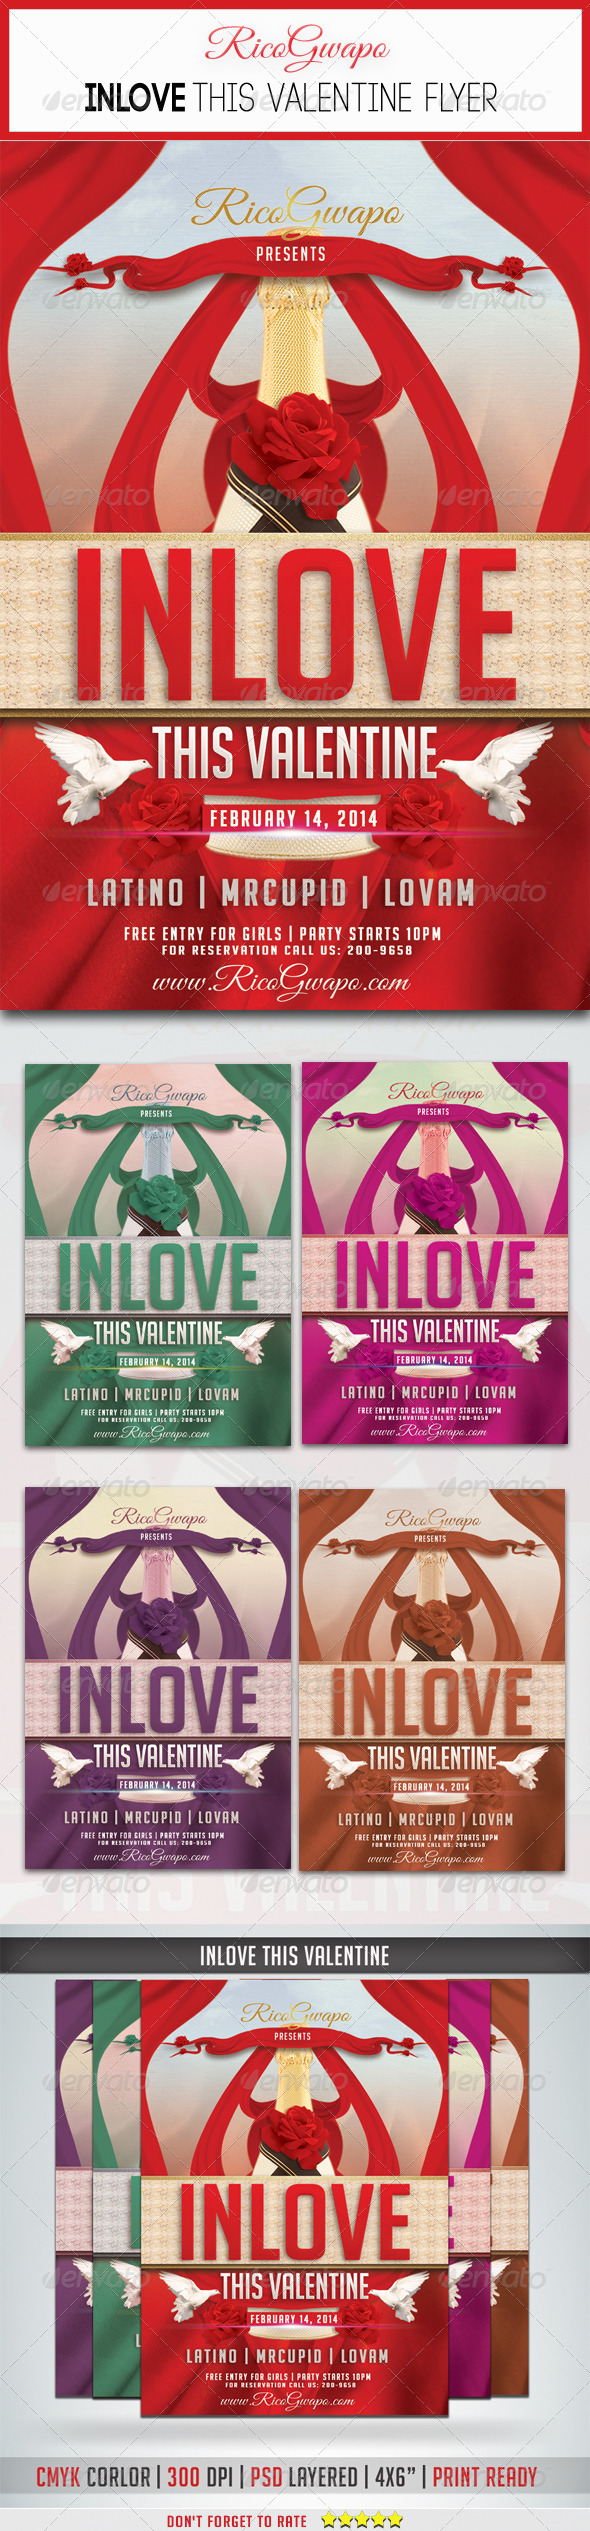 Inlove This Valentine Flyer Template - Flyers Print Templates